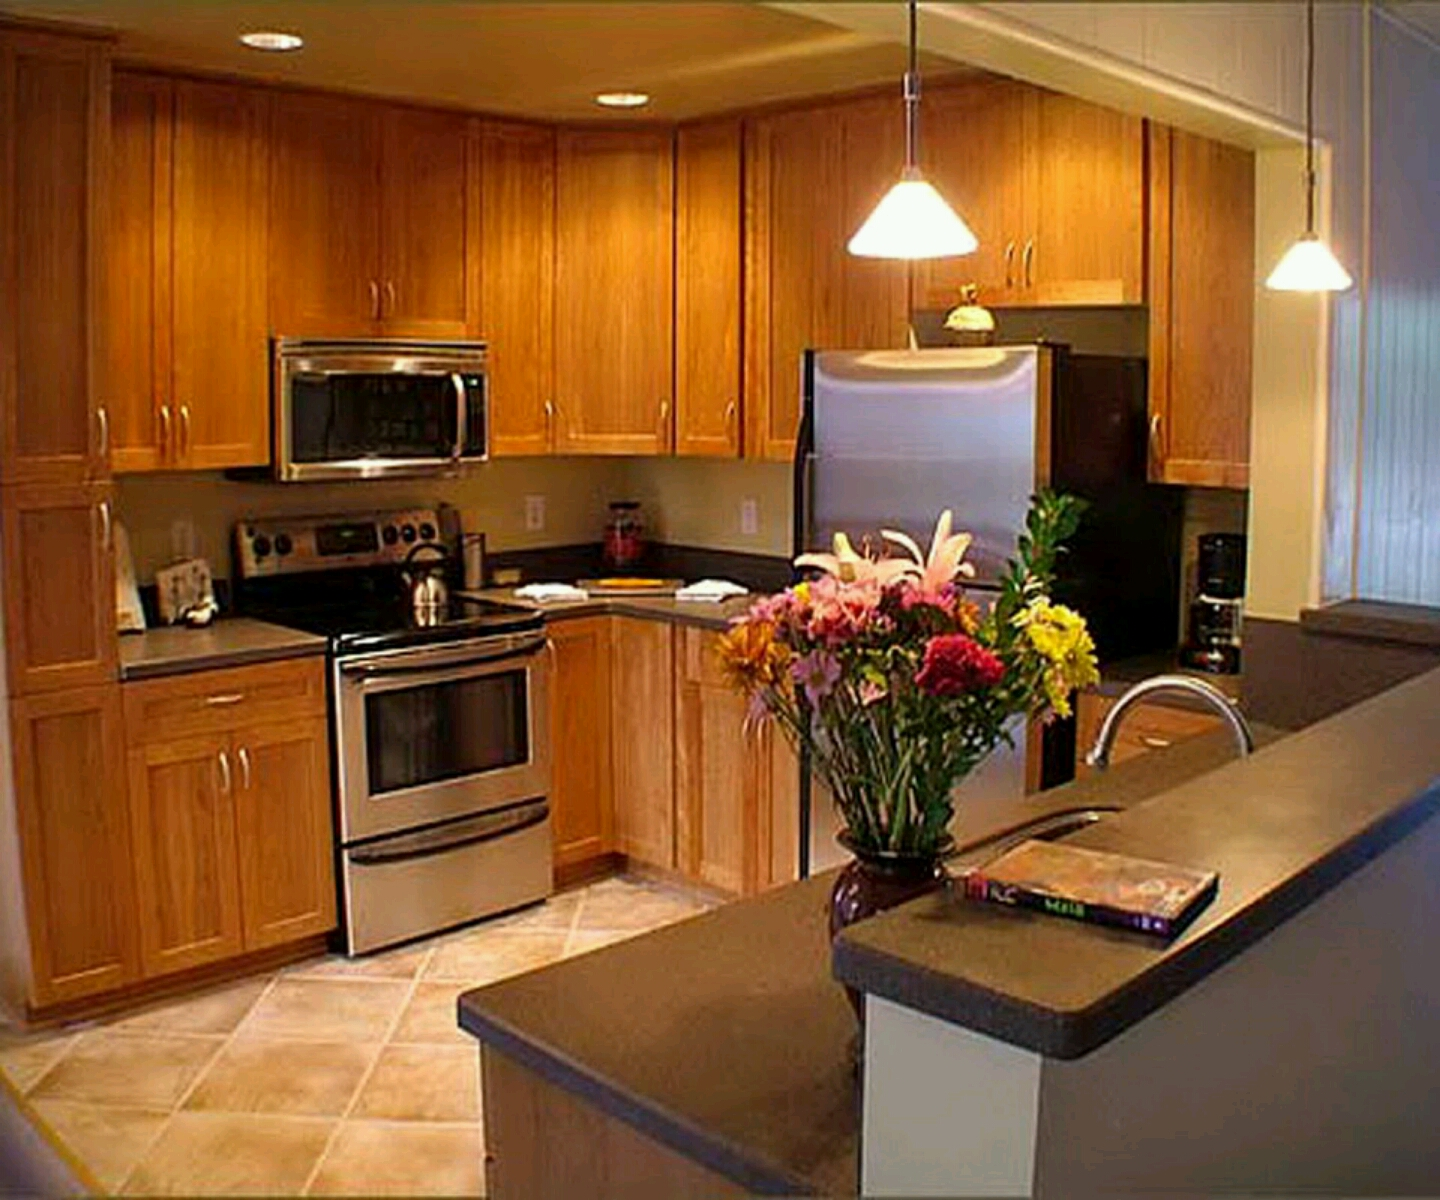 kitchen cabinets dark wood floor kitchens trendy kitchen wood